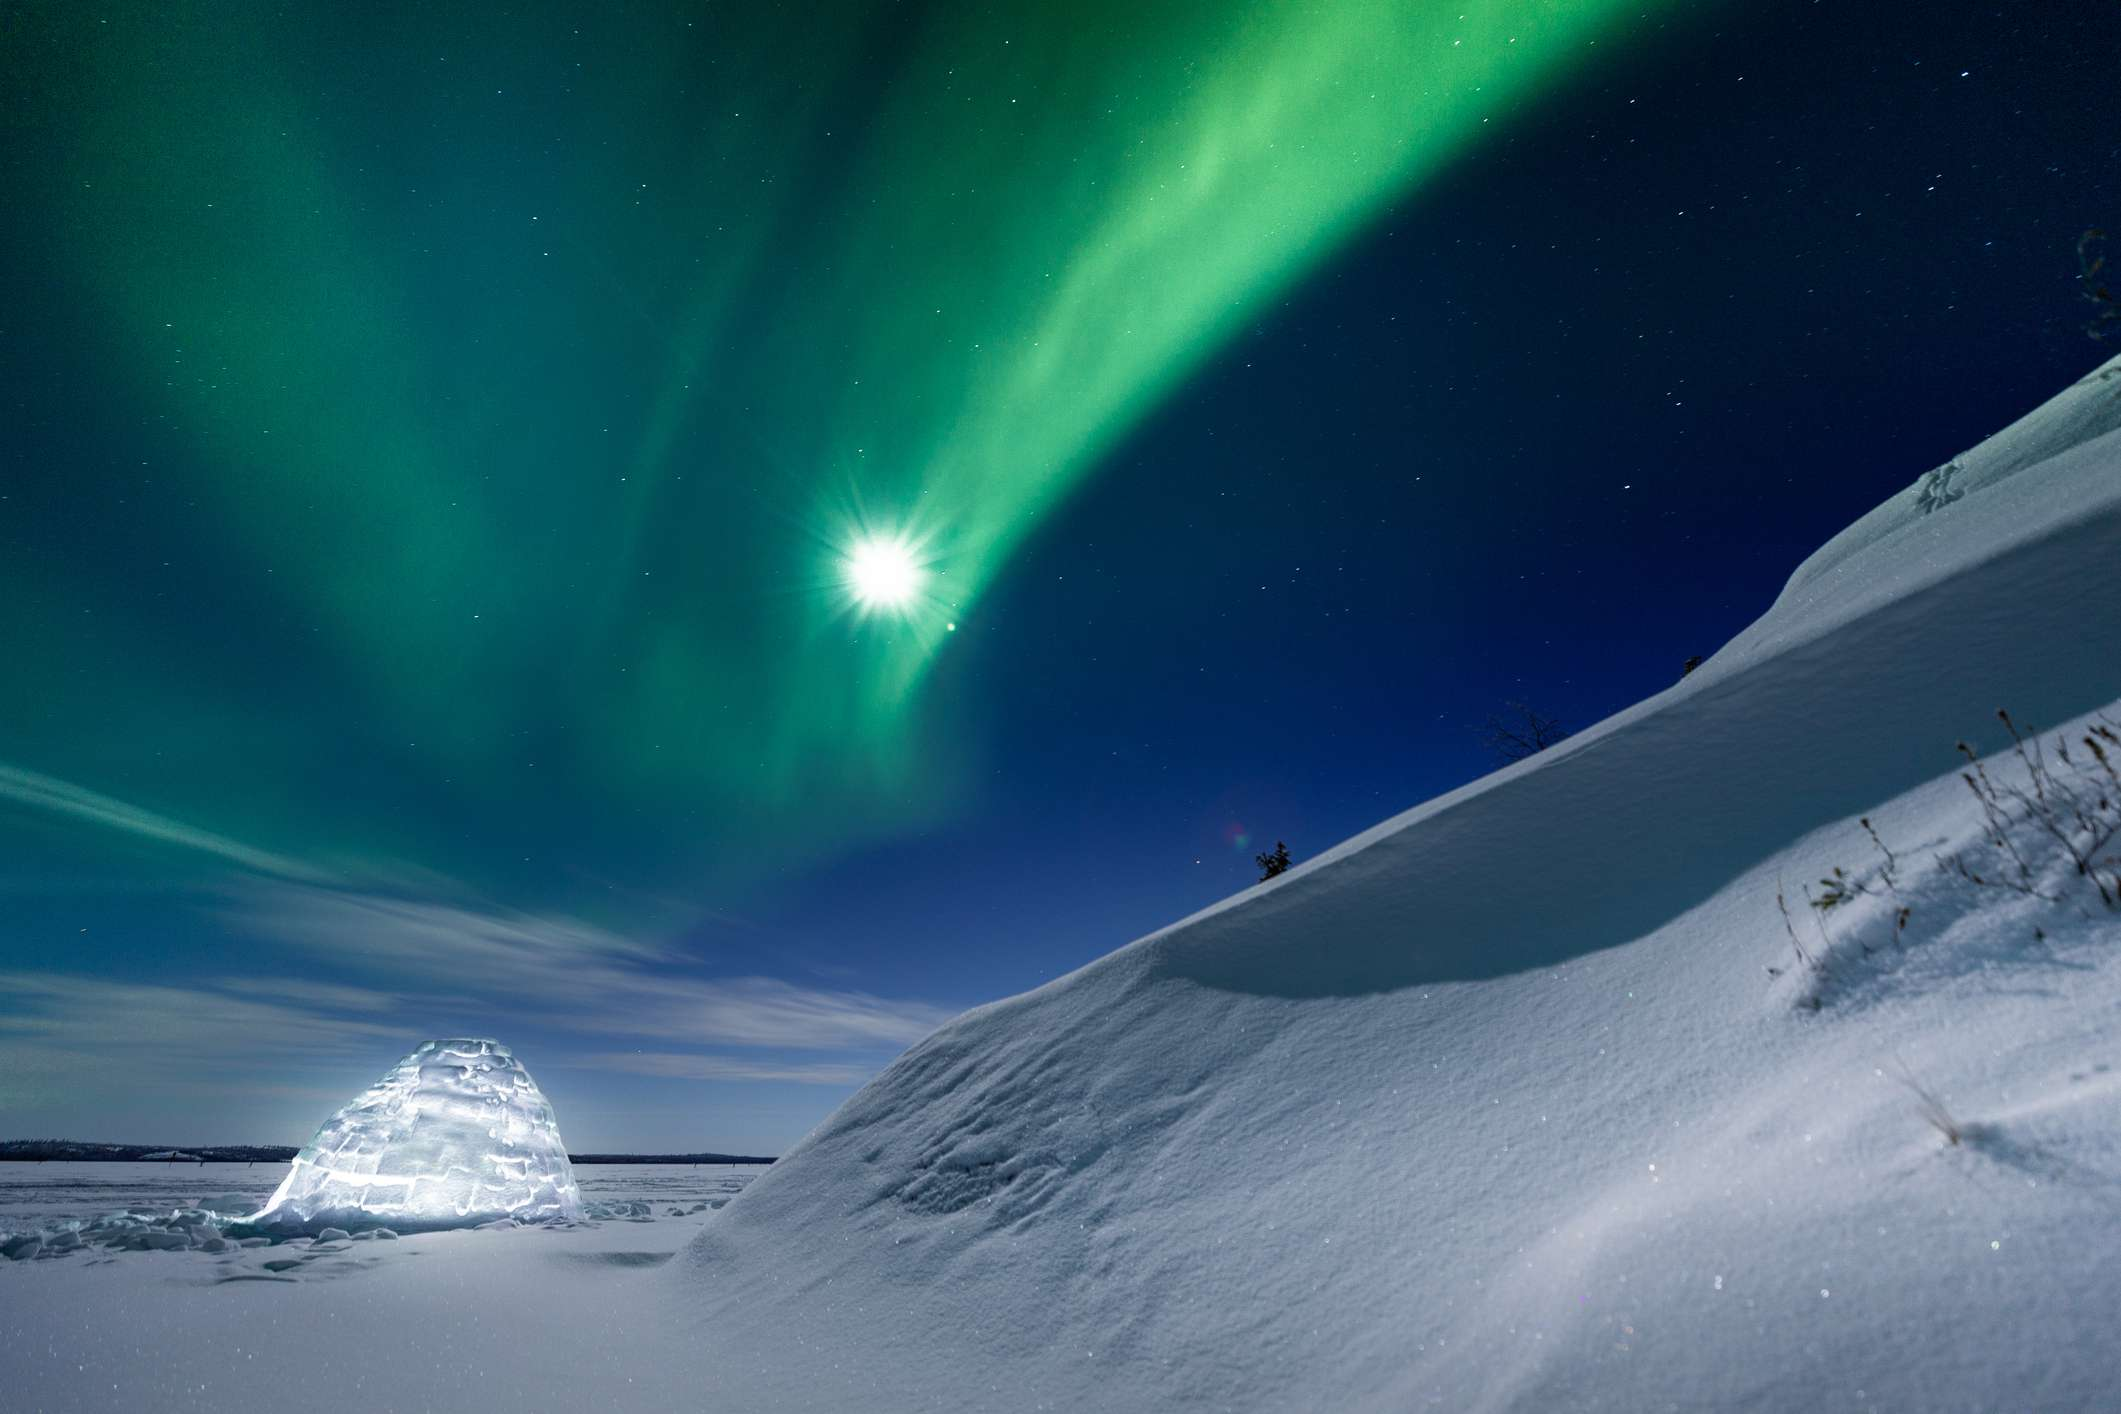 Glowing igloo and snow-covered landscape under the northern lights